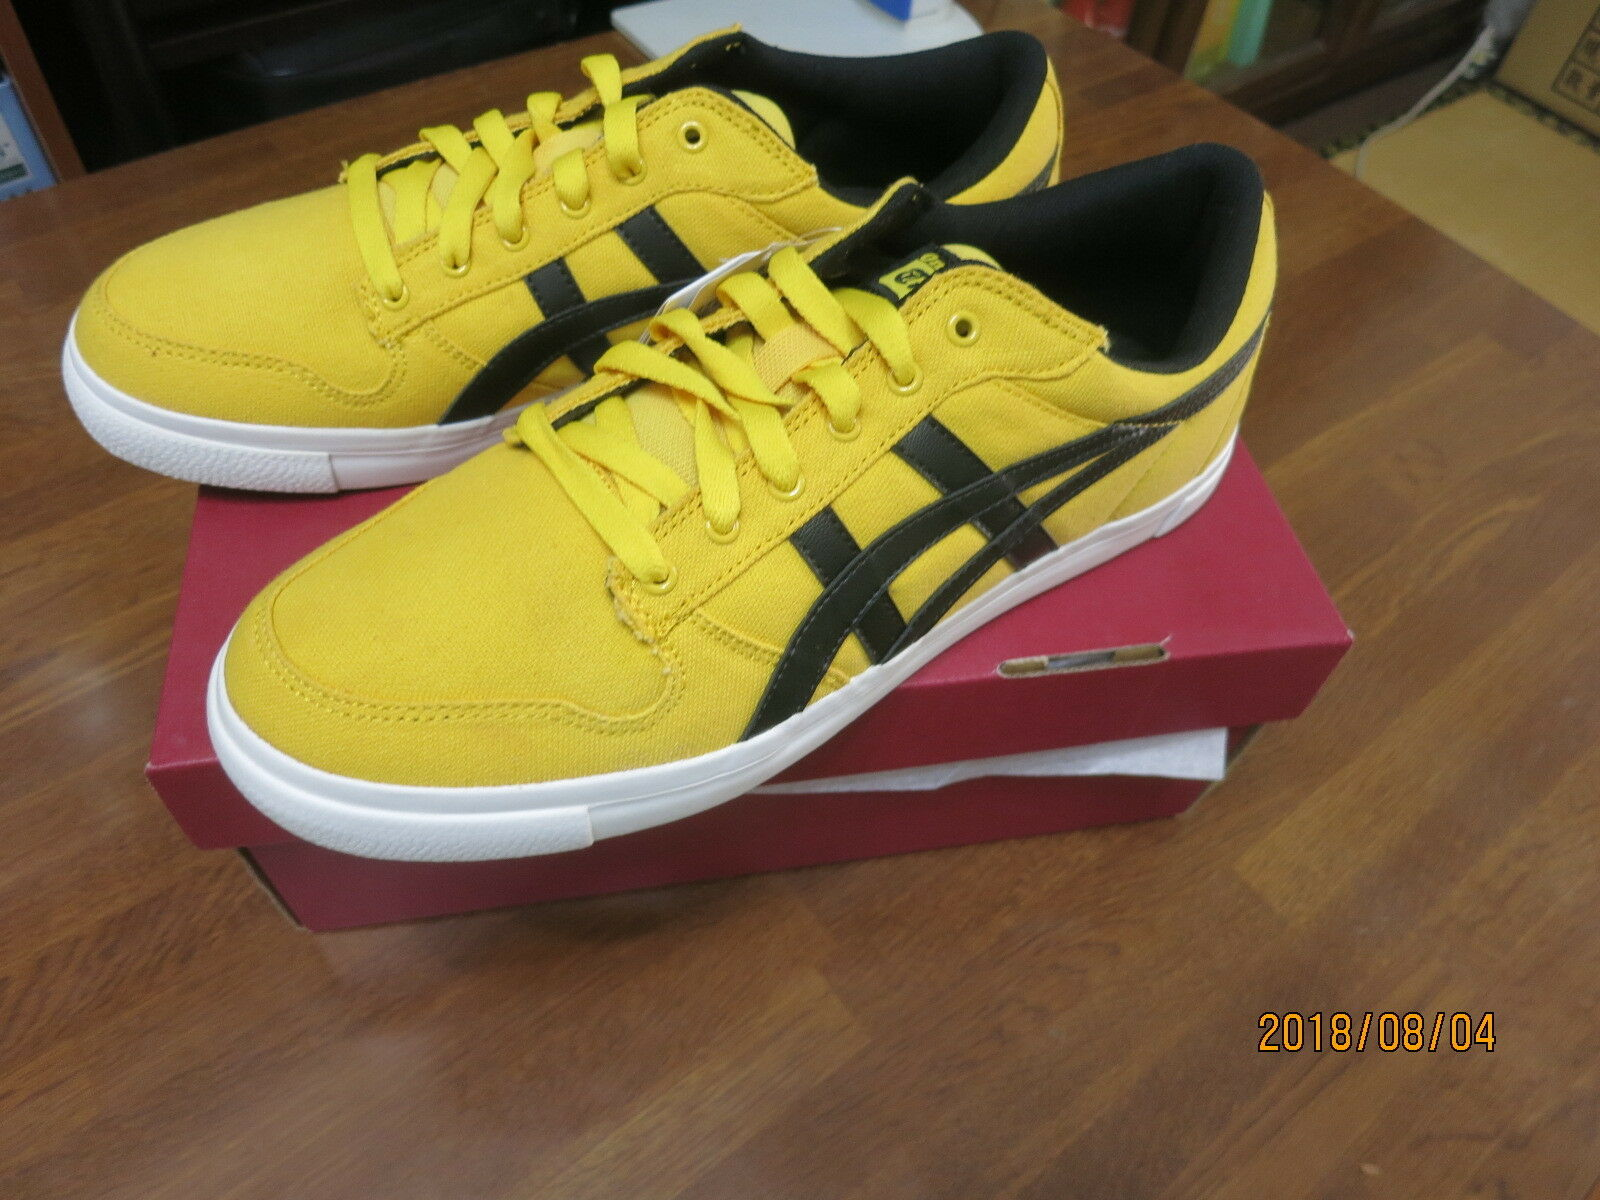 Asics Onitsuka Tiger Yellow /Black  Shoes A-SYS  SIZE USJP27.5 Seasonal price cuts, discount benefits